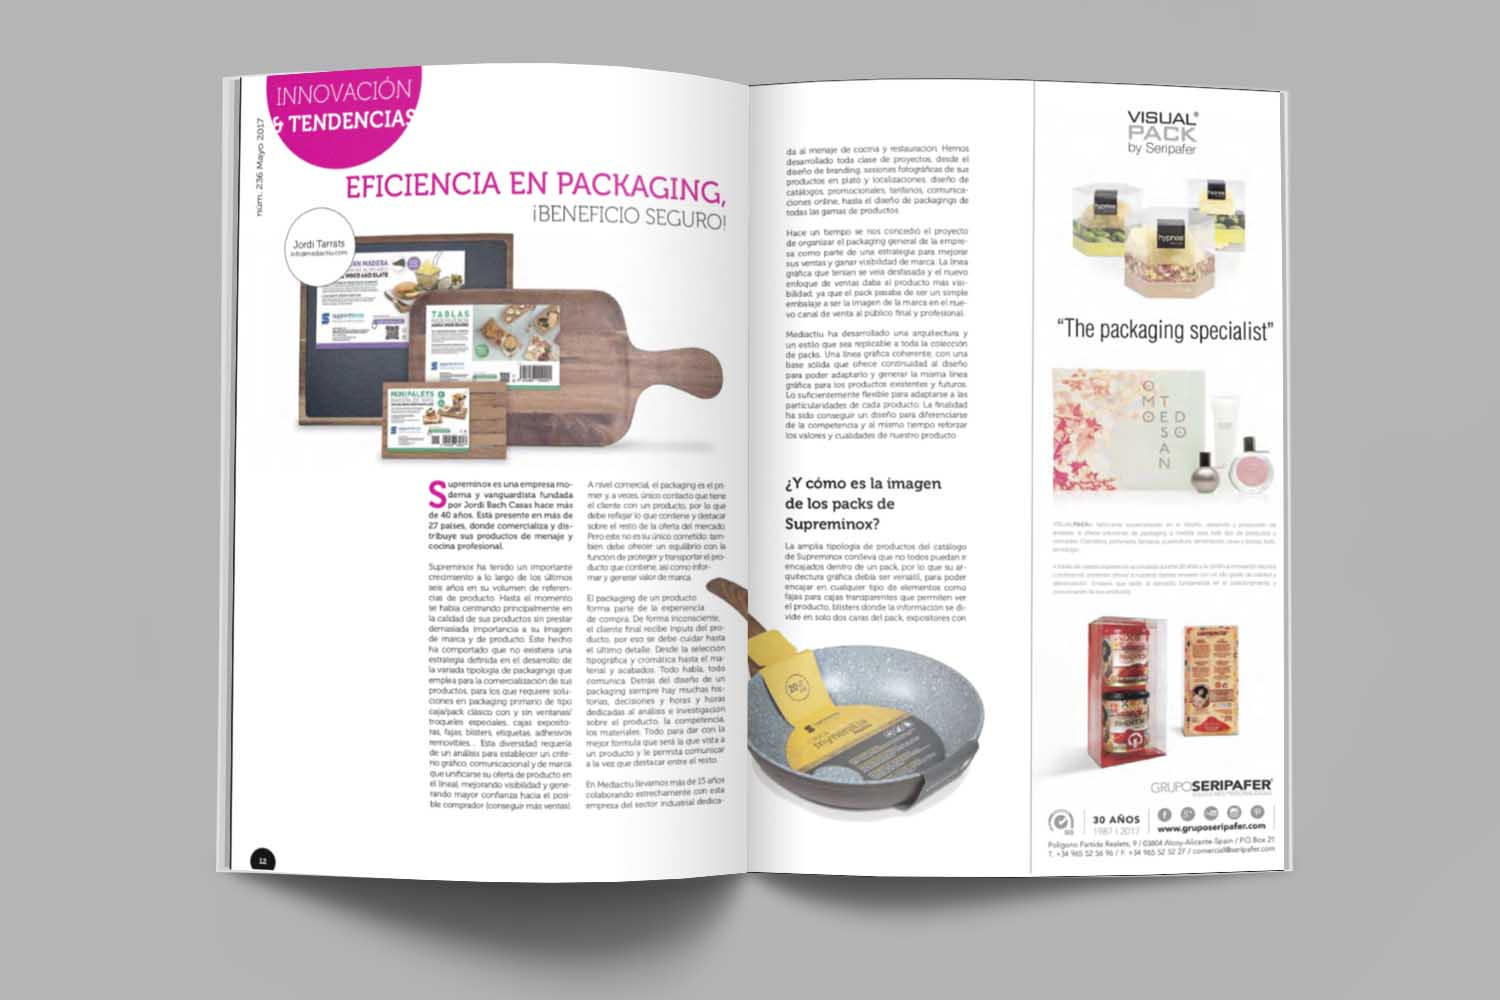 Packaging design reference barcelona - En reconocimiento a la eficiencia en la creación de packaging